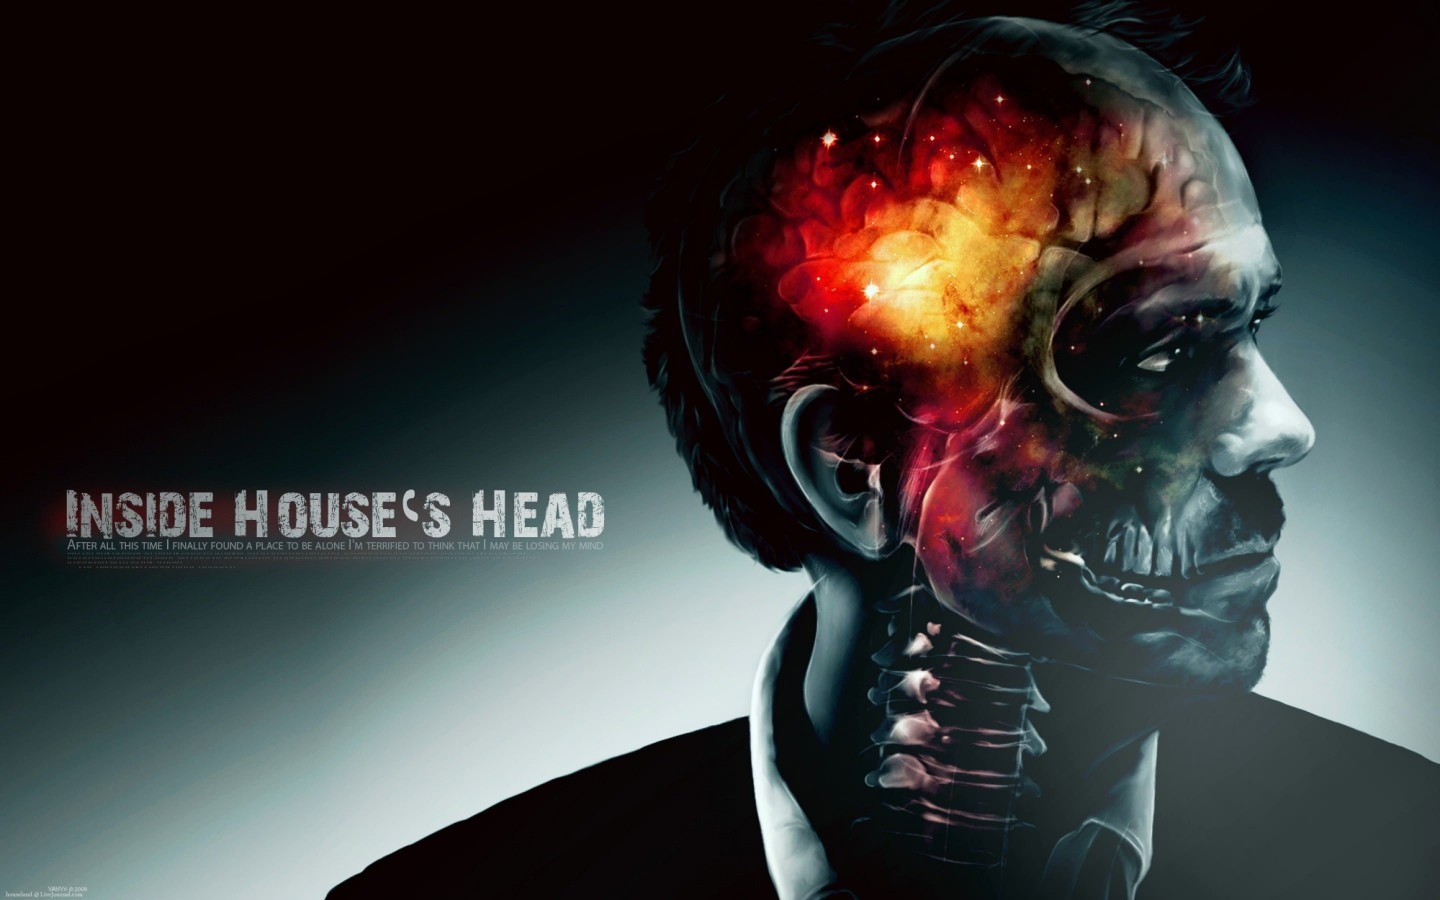 Inside House's Head Artwork Wallpaper for Desktop 1440x900